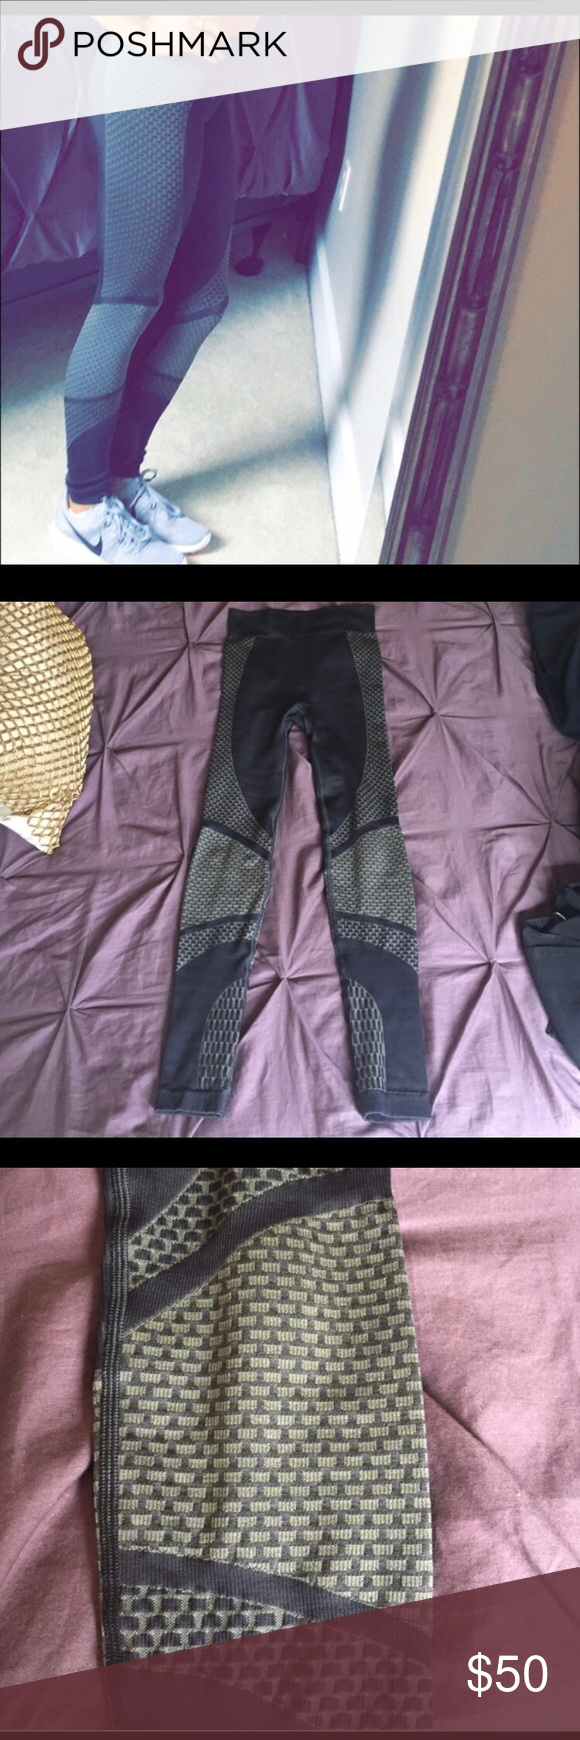 Lululemon Leggings **this is a re-post from another posher, I recently lost weight and I thought I could fit them but they're a little too big!** these are SUPER cute and very comfortable. Great for working out or just for running errands. The material is a little thicker and they are full-length, high-waisted. lululemon athletica Pants Leggings